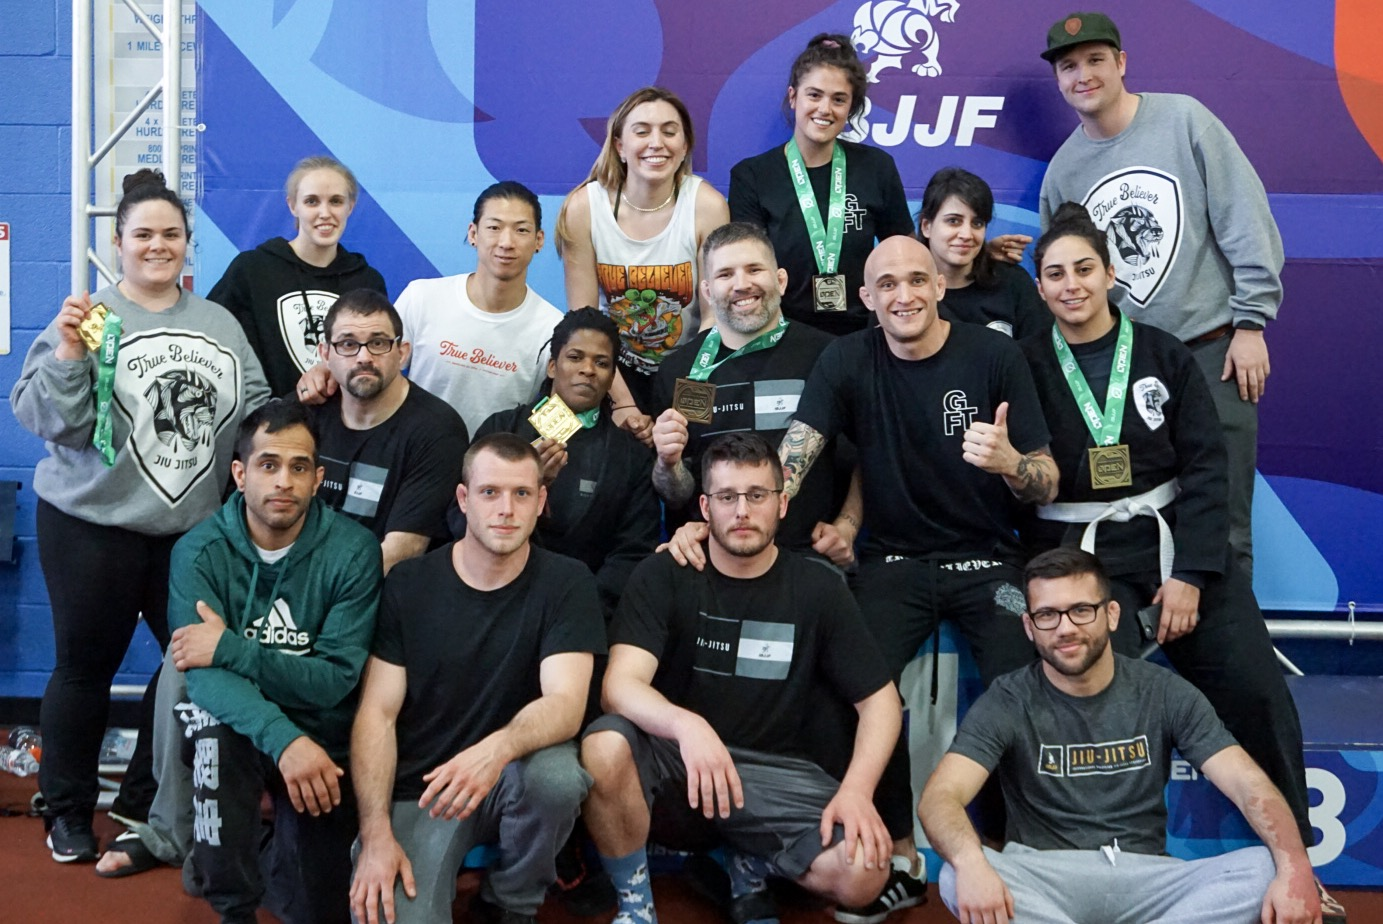 The tribe made the journey to compete at the IBJJF Washington D.C. Spring International Open, earning six total medals.